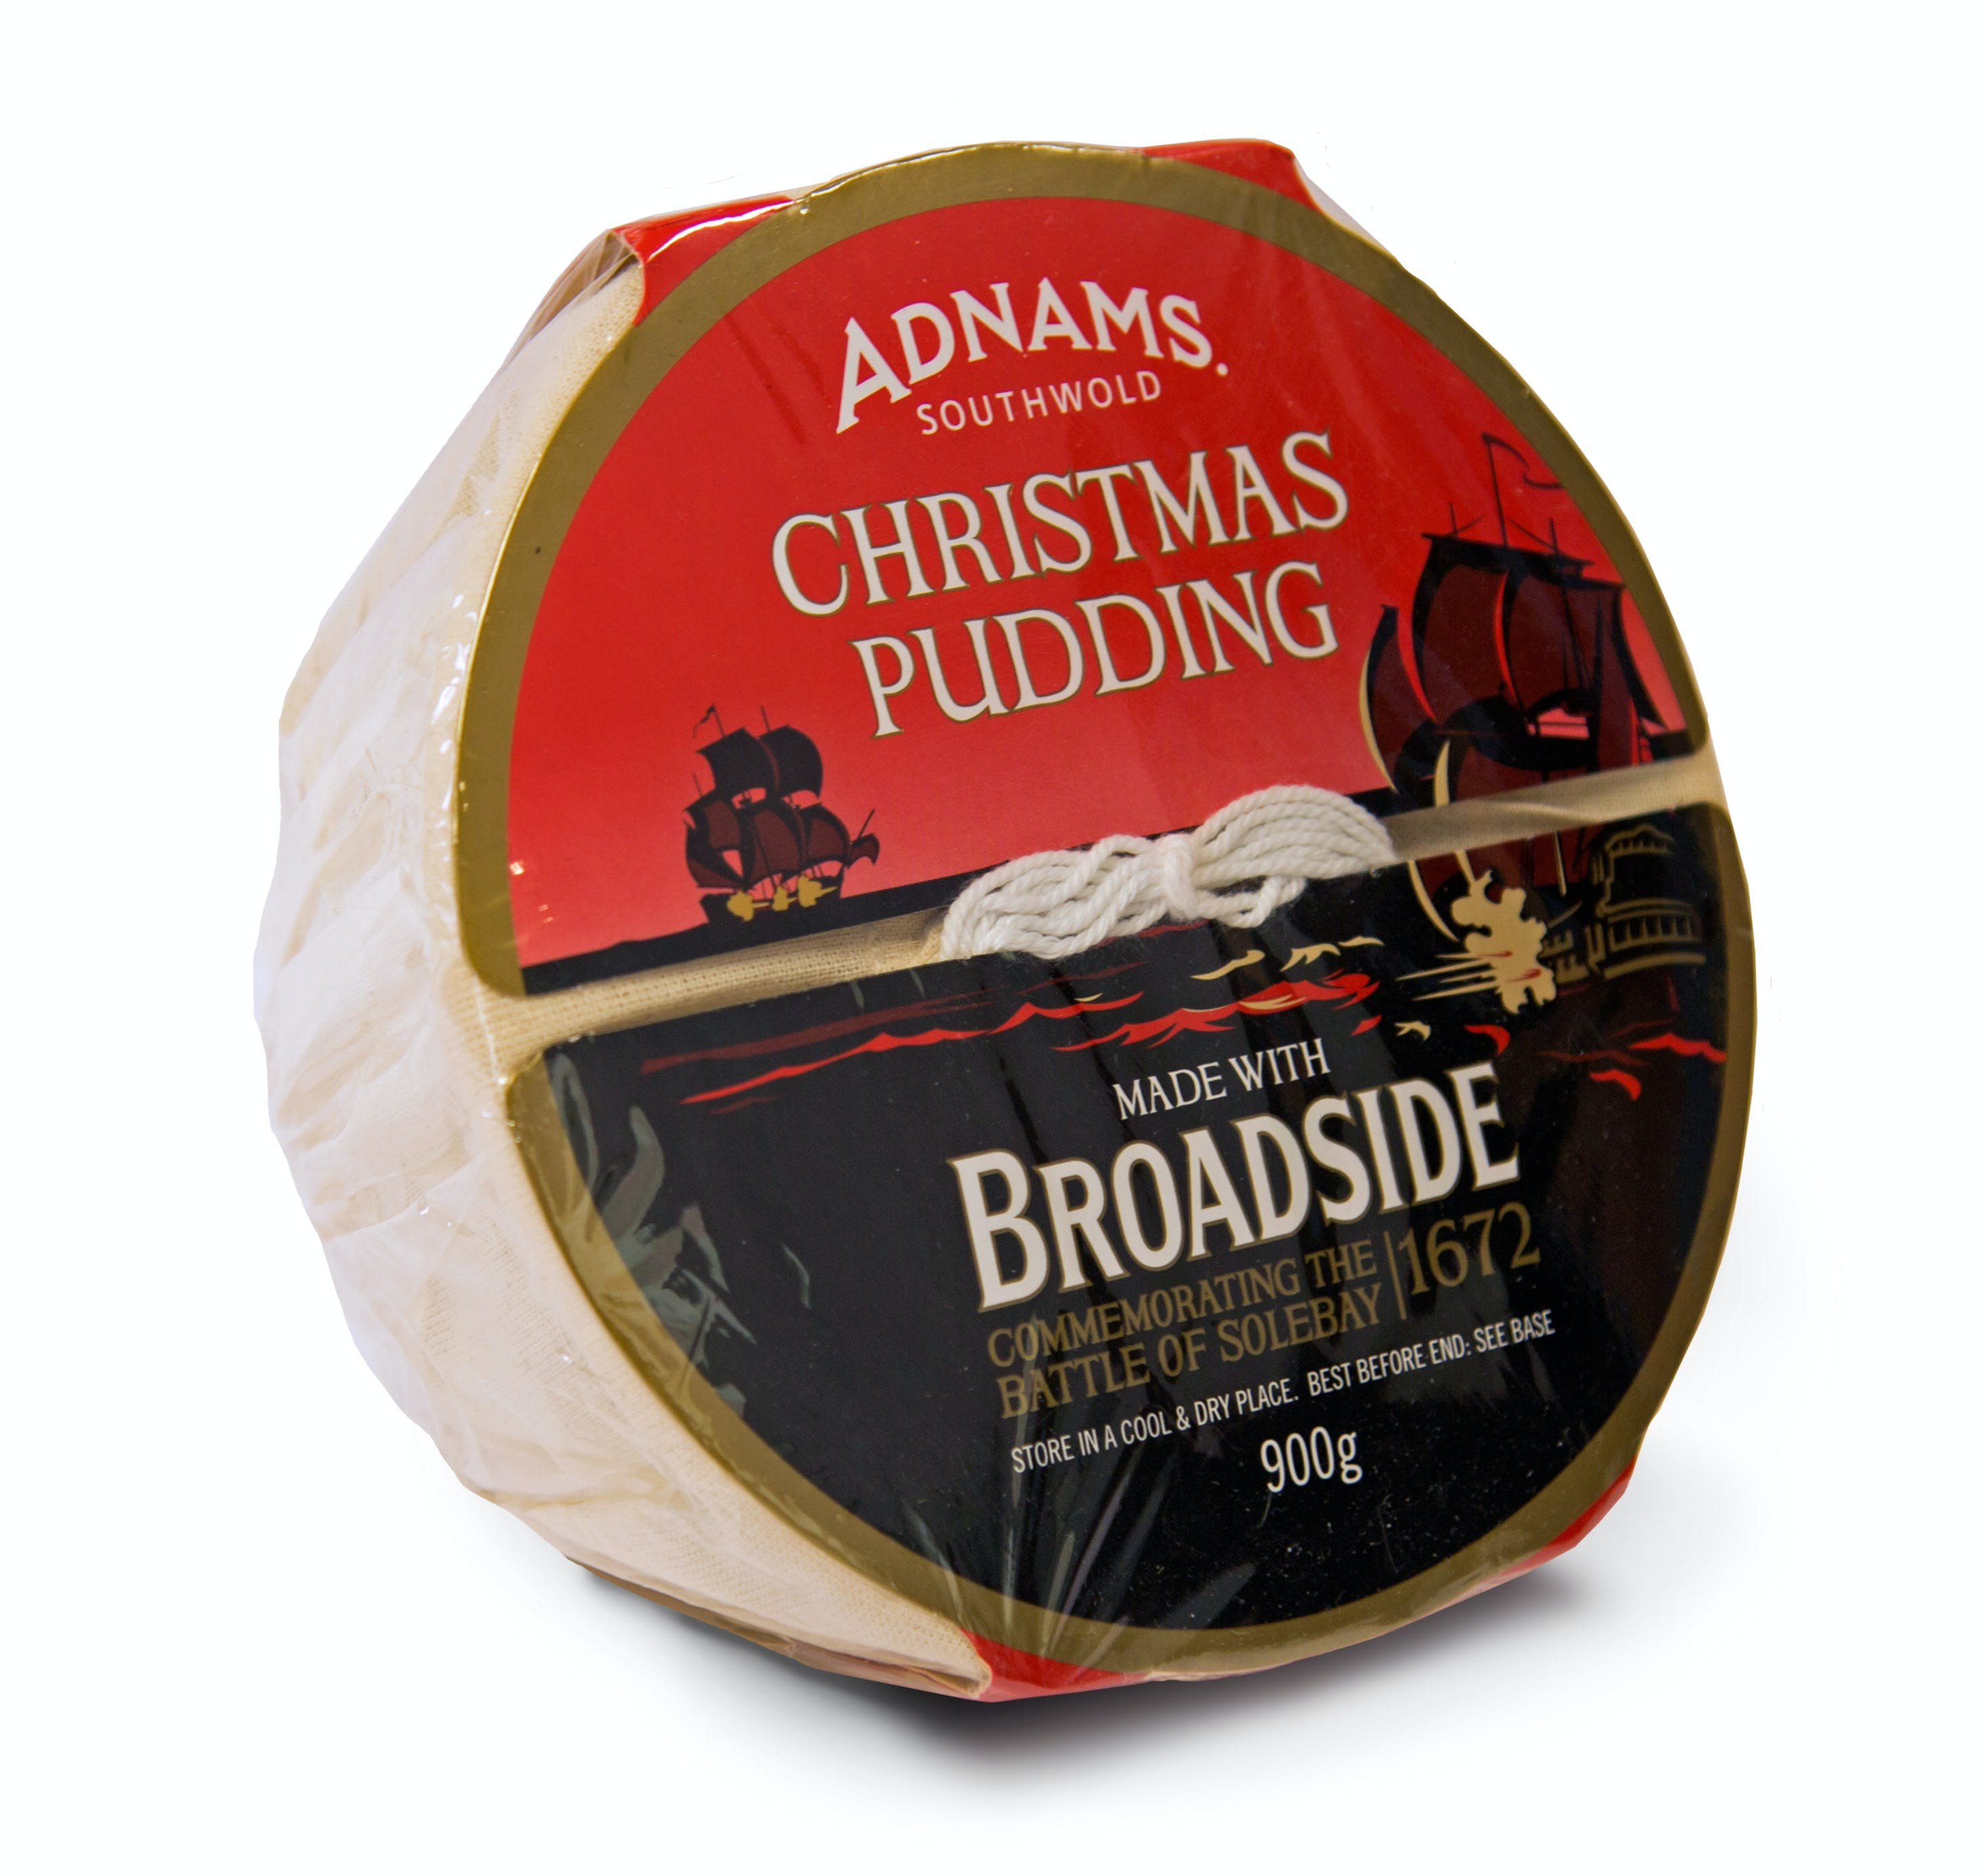 Stockists of Adnams Spirit of Broadside Marmalade